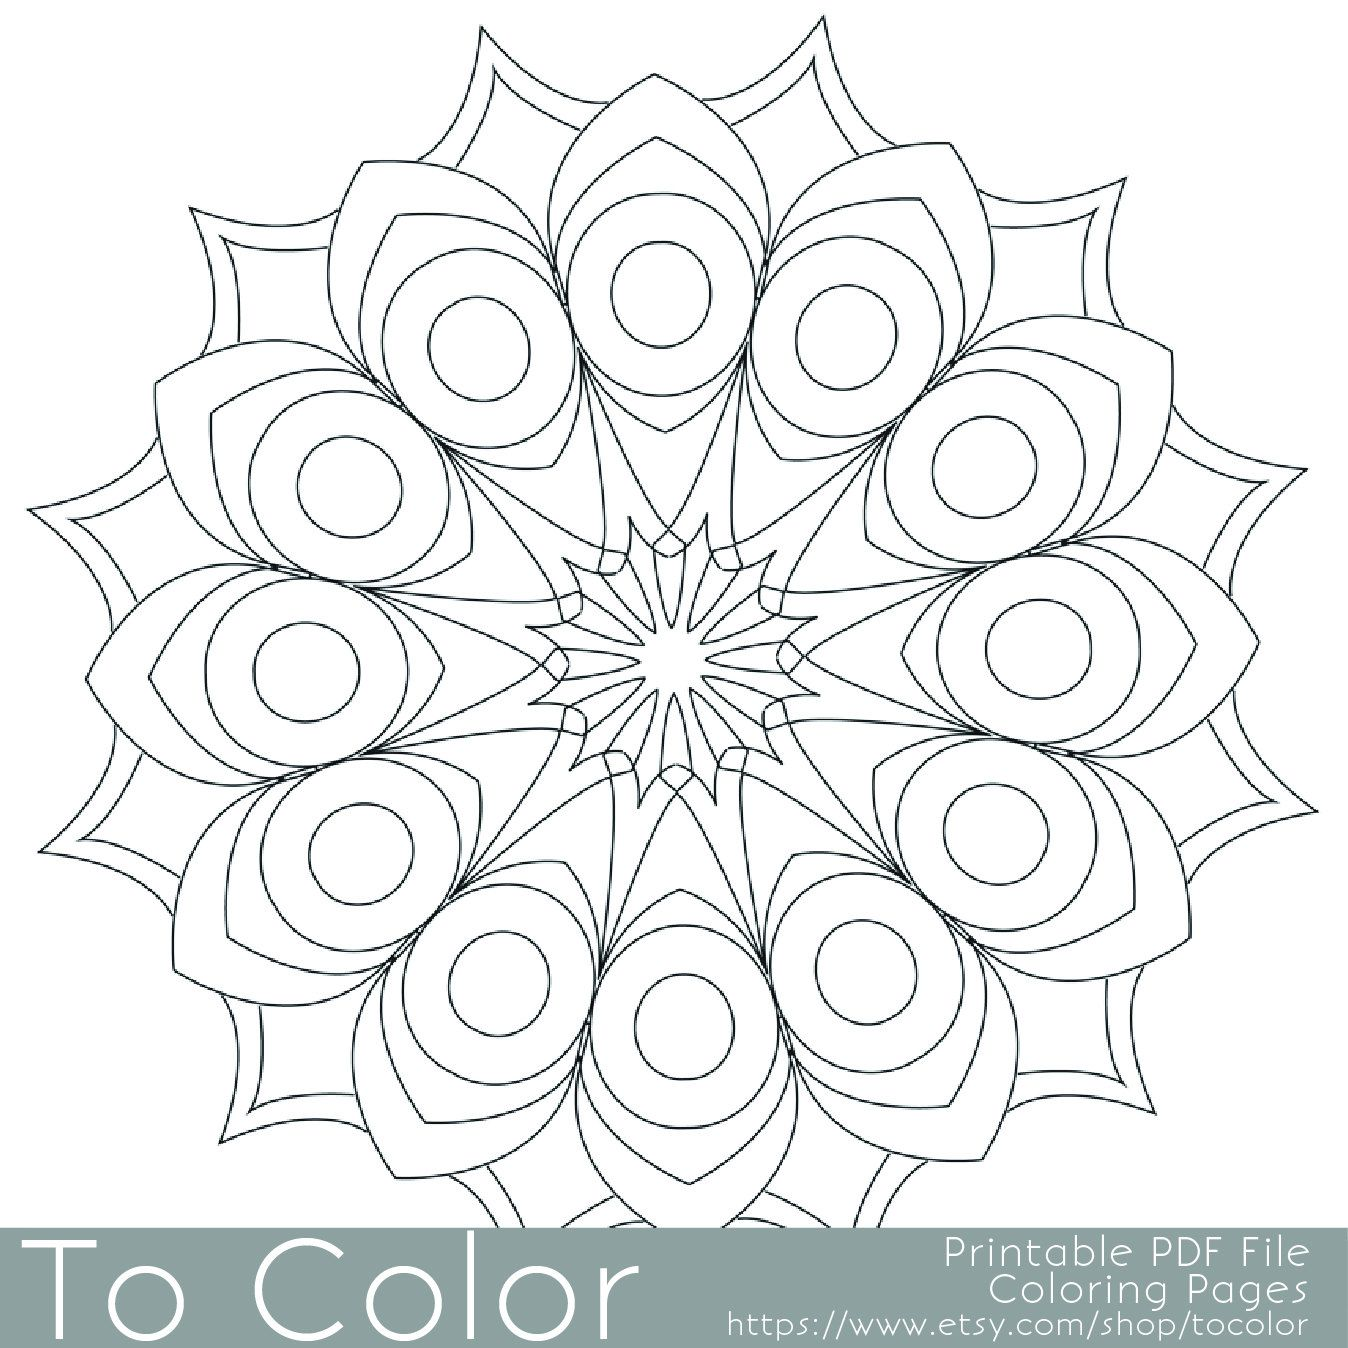 Printable Circular Mandala Easy Coloring Pages For Adults Big Spaces PDF JPG